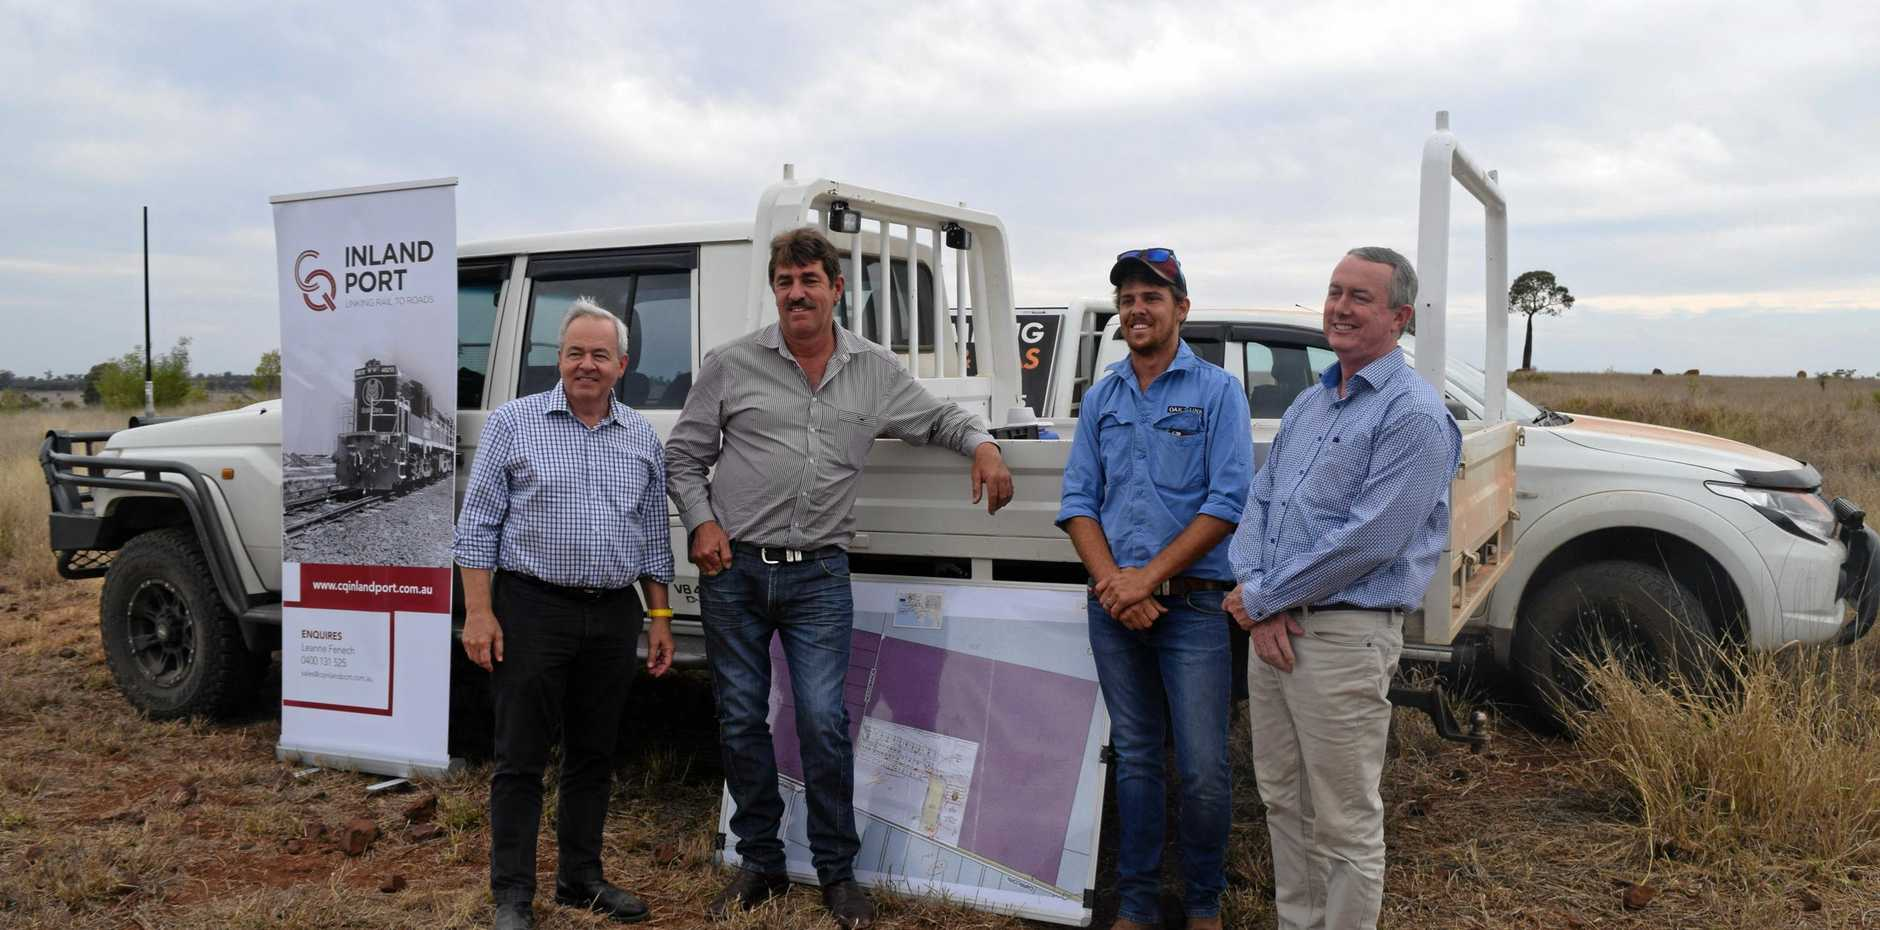 GrainCorp CEO, Mark Palmquist, CQ Inland Port Development manager, Alan Stent-smith, Warrick Stent-smith and transaction agent, Rawdon Briggs at the Central Queensland Inland port development site.